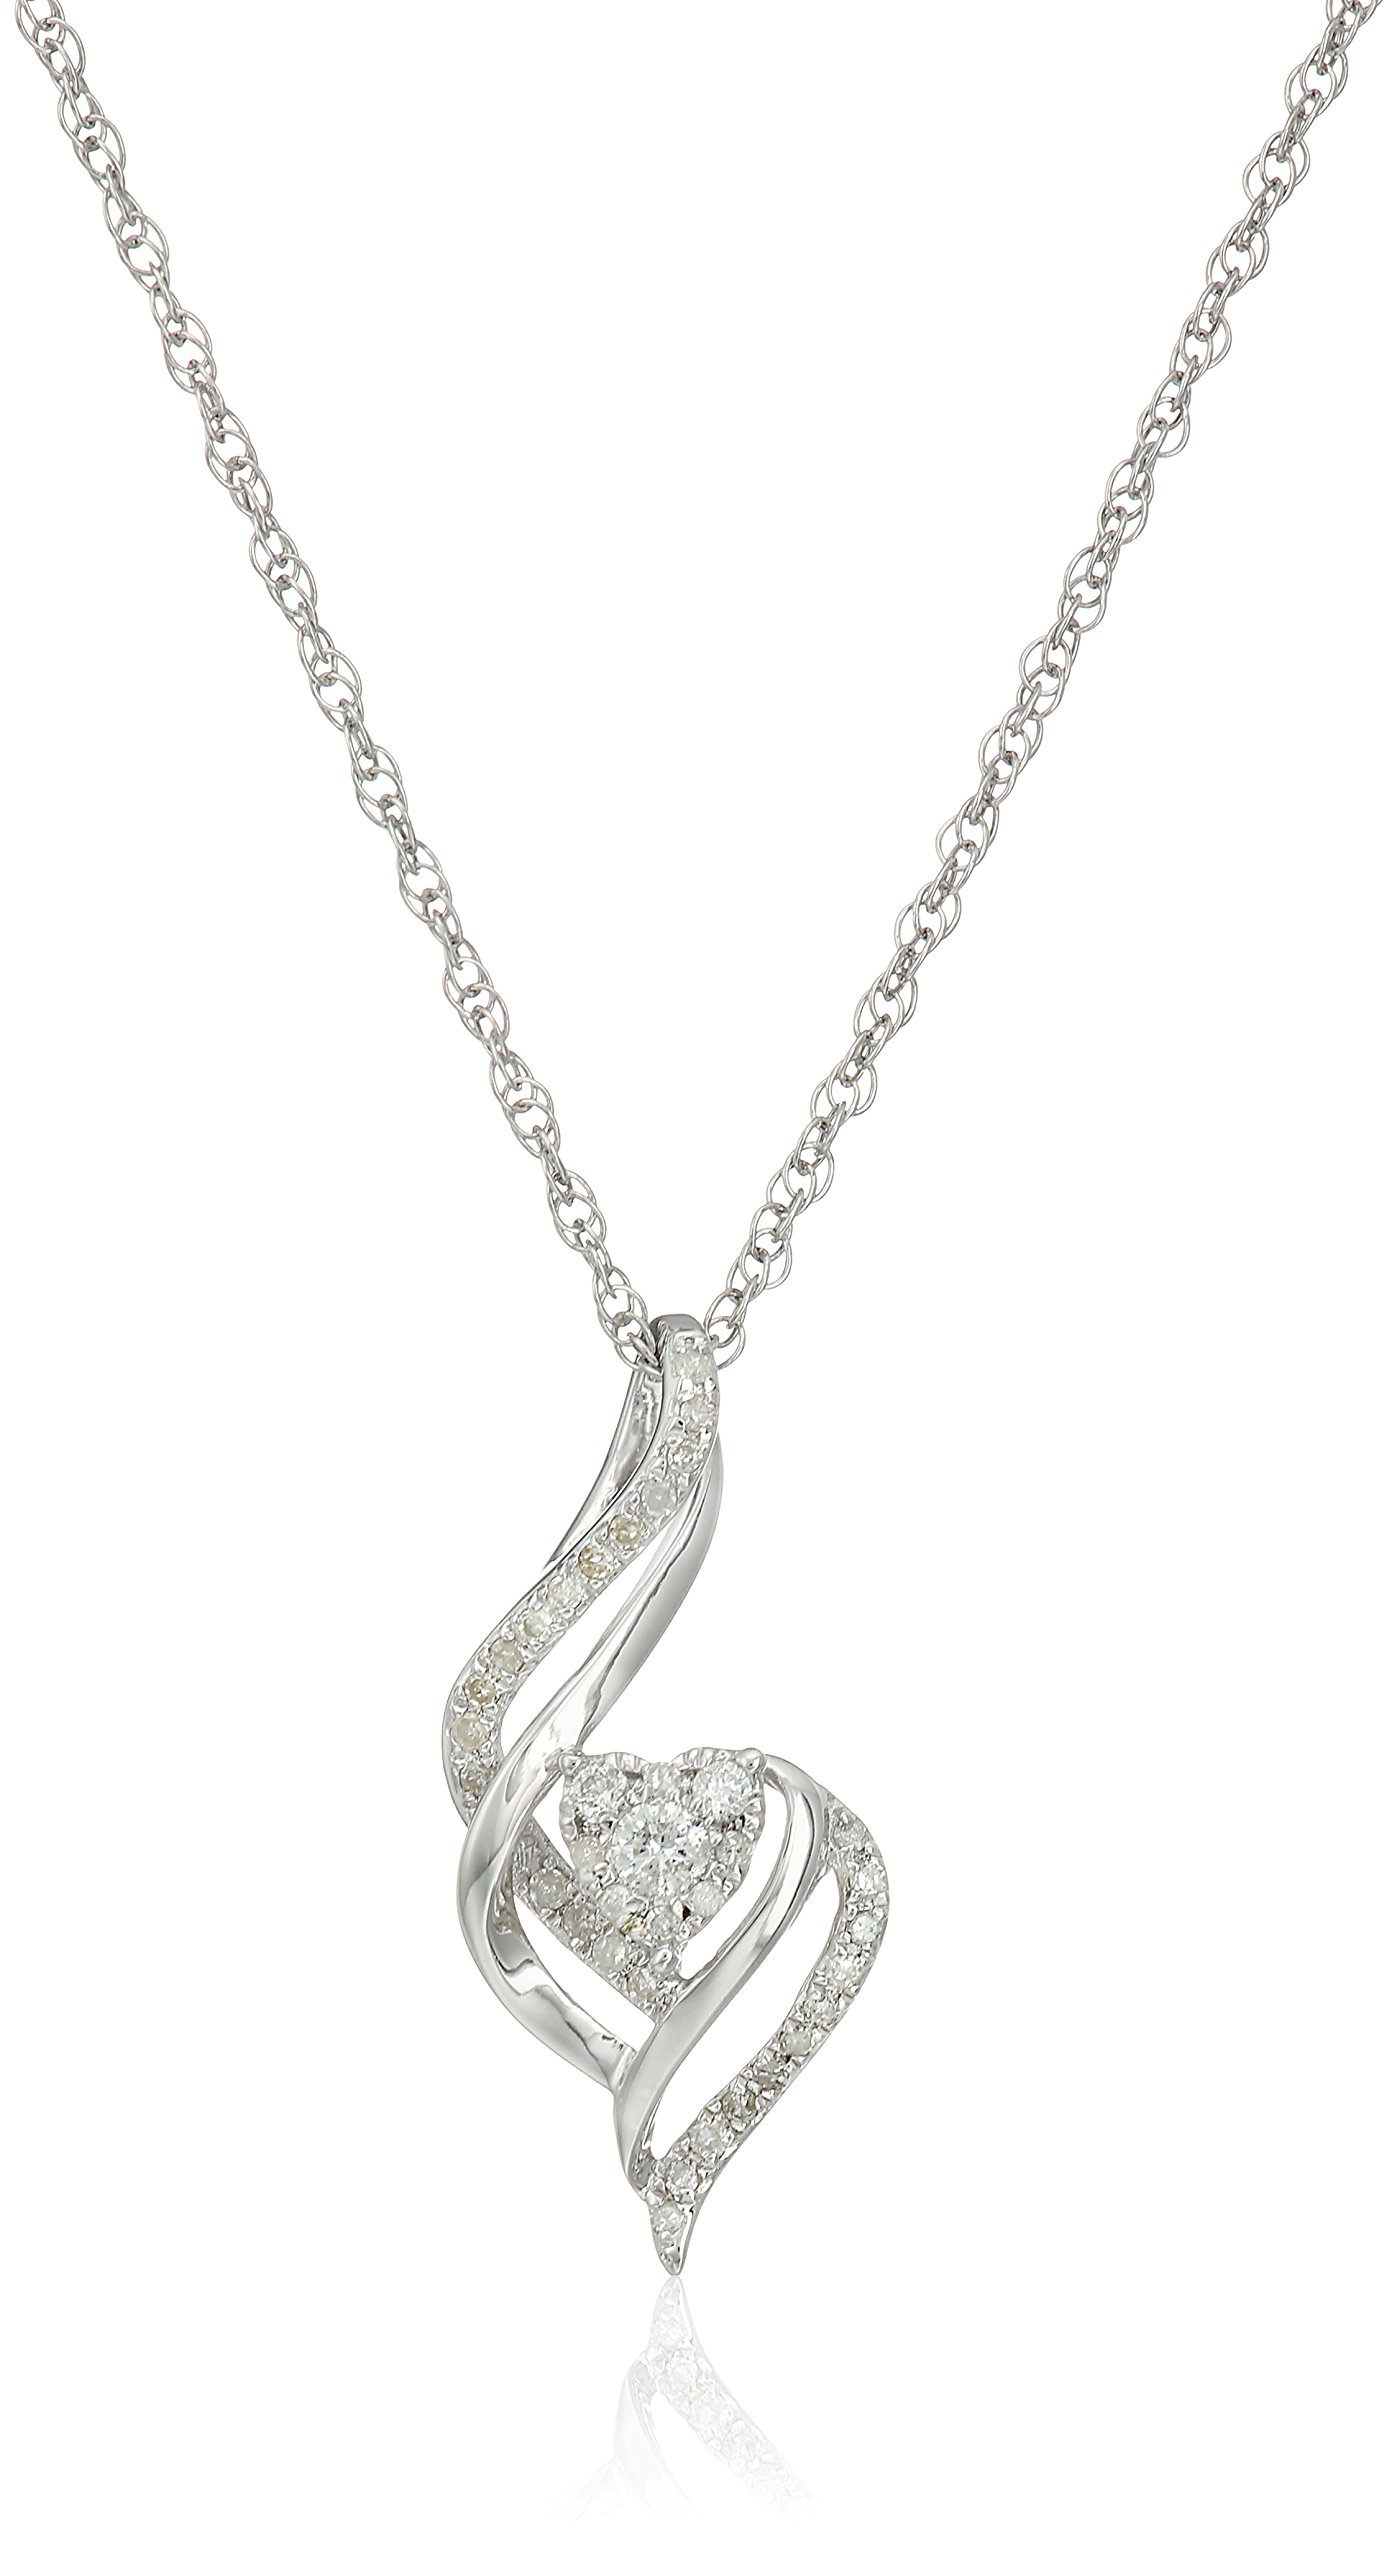 Sterling Silver Diamond Heart Pendant Necklace (1/5 cttw, I-J Color, I2-I3 Clarity), 18''